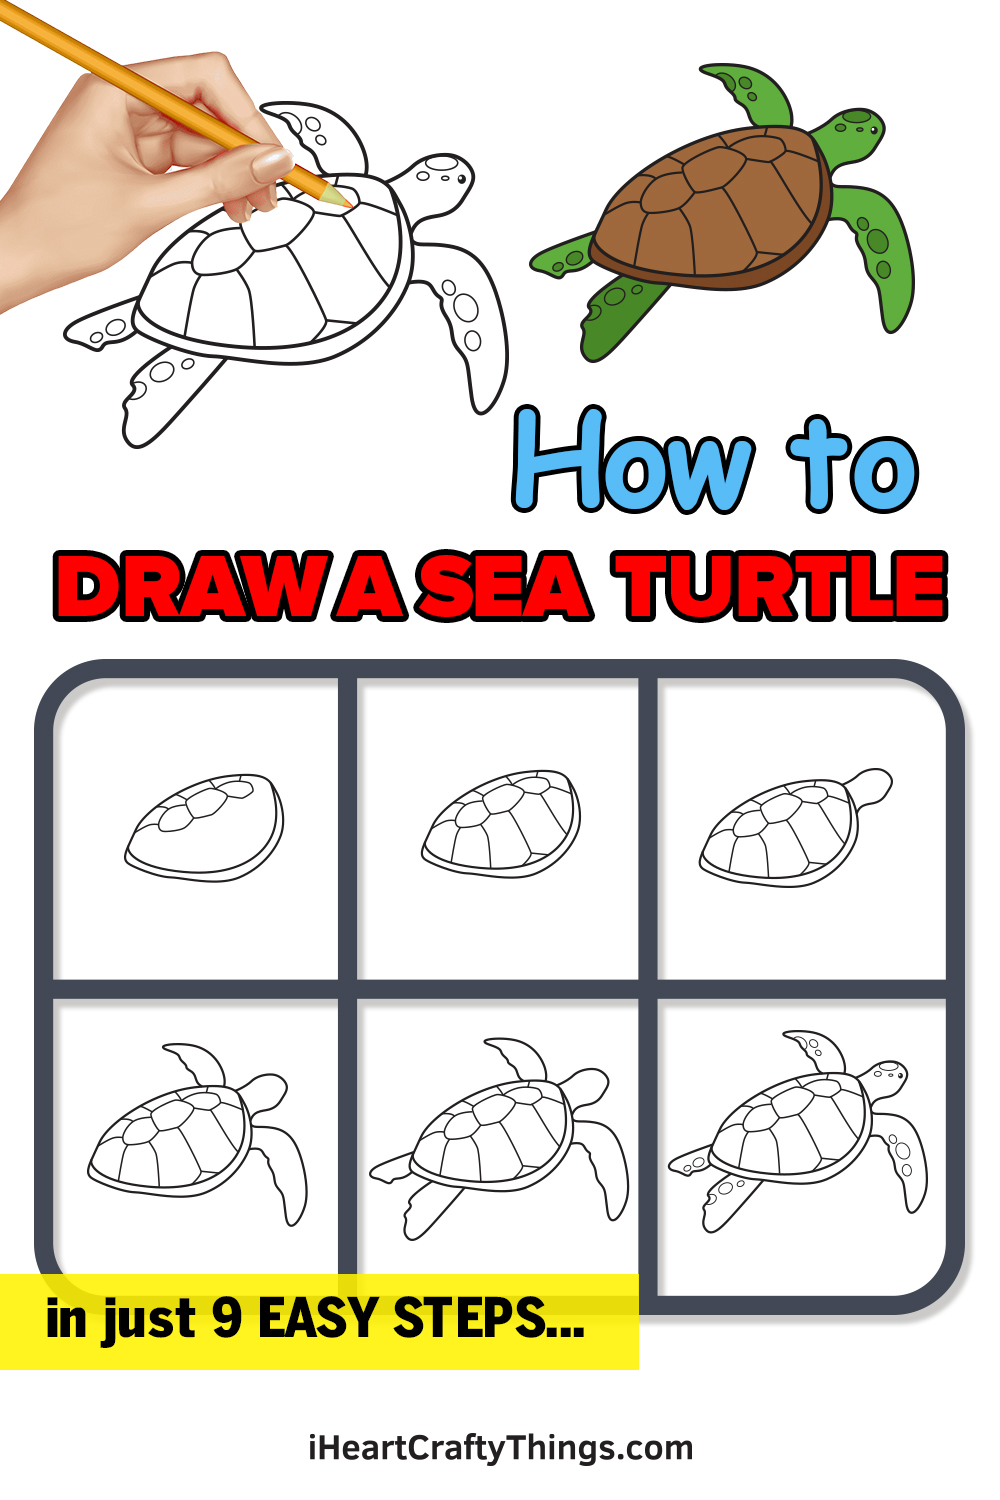 How to Draw a Sea Turtle in 9 Easy Steps